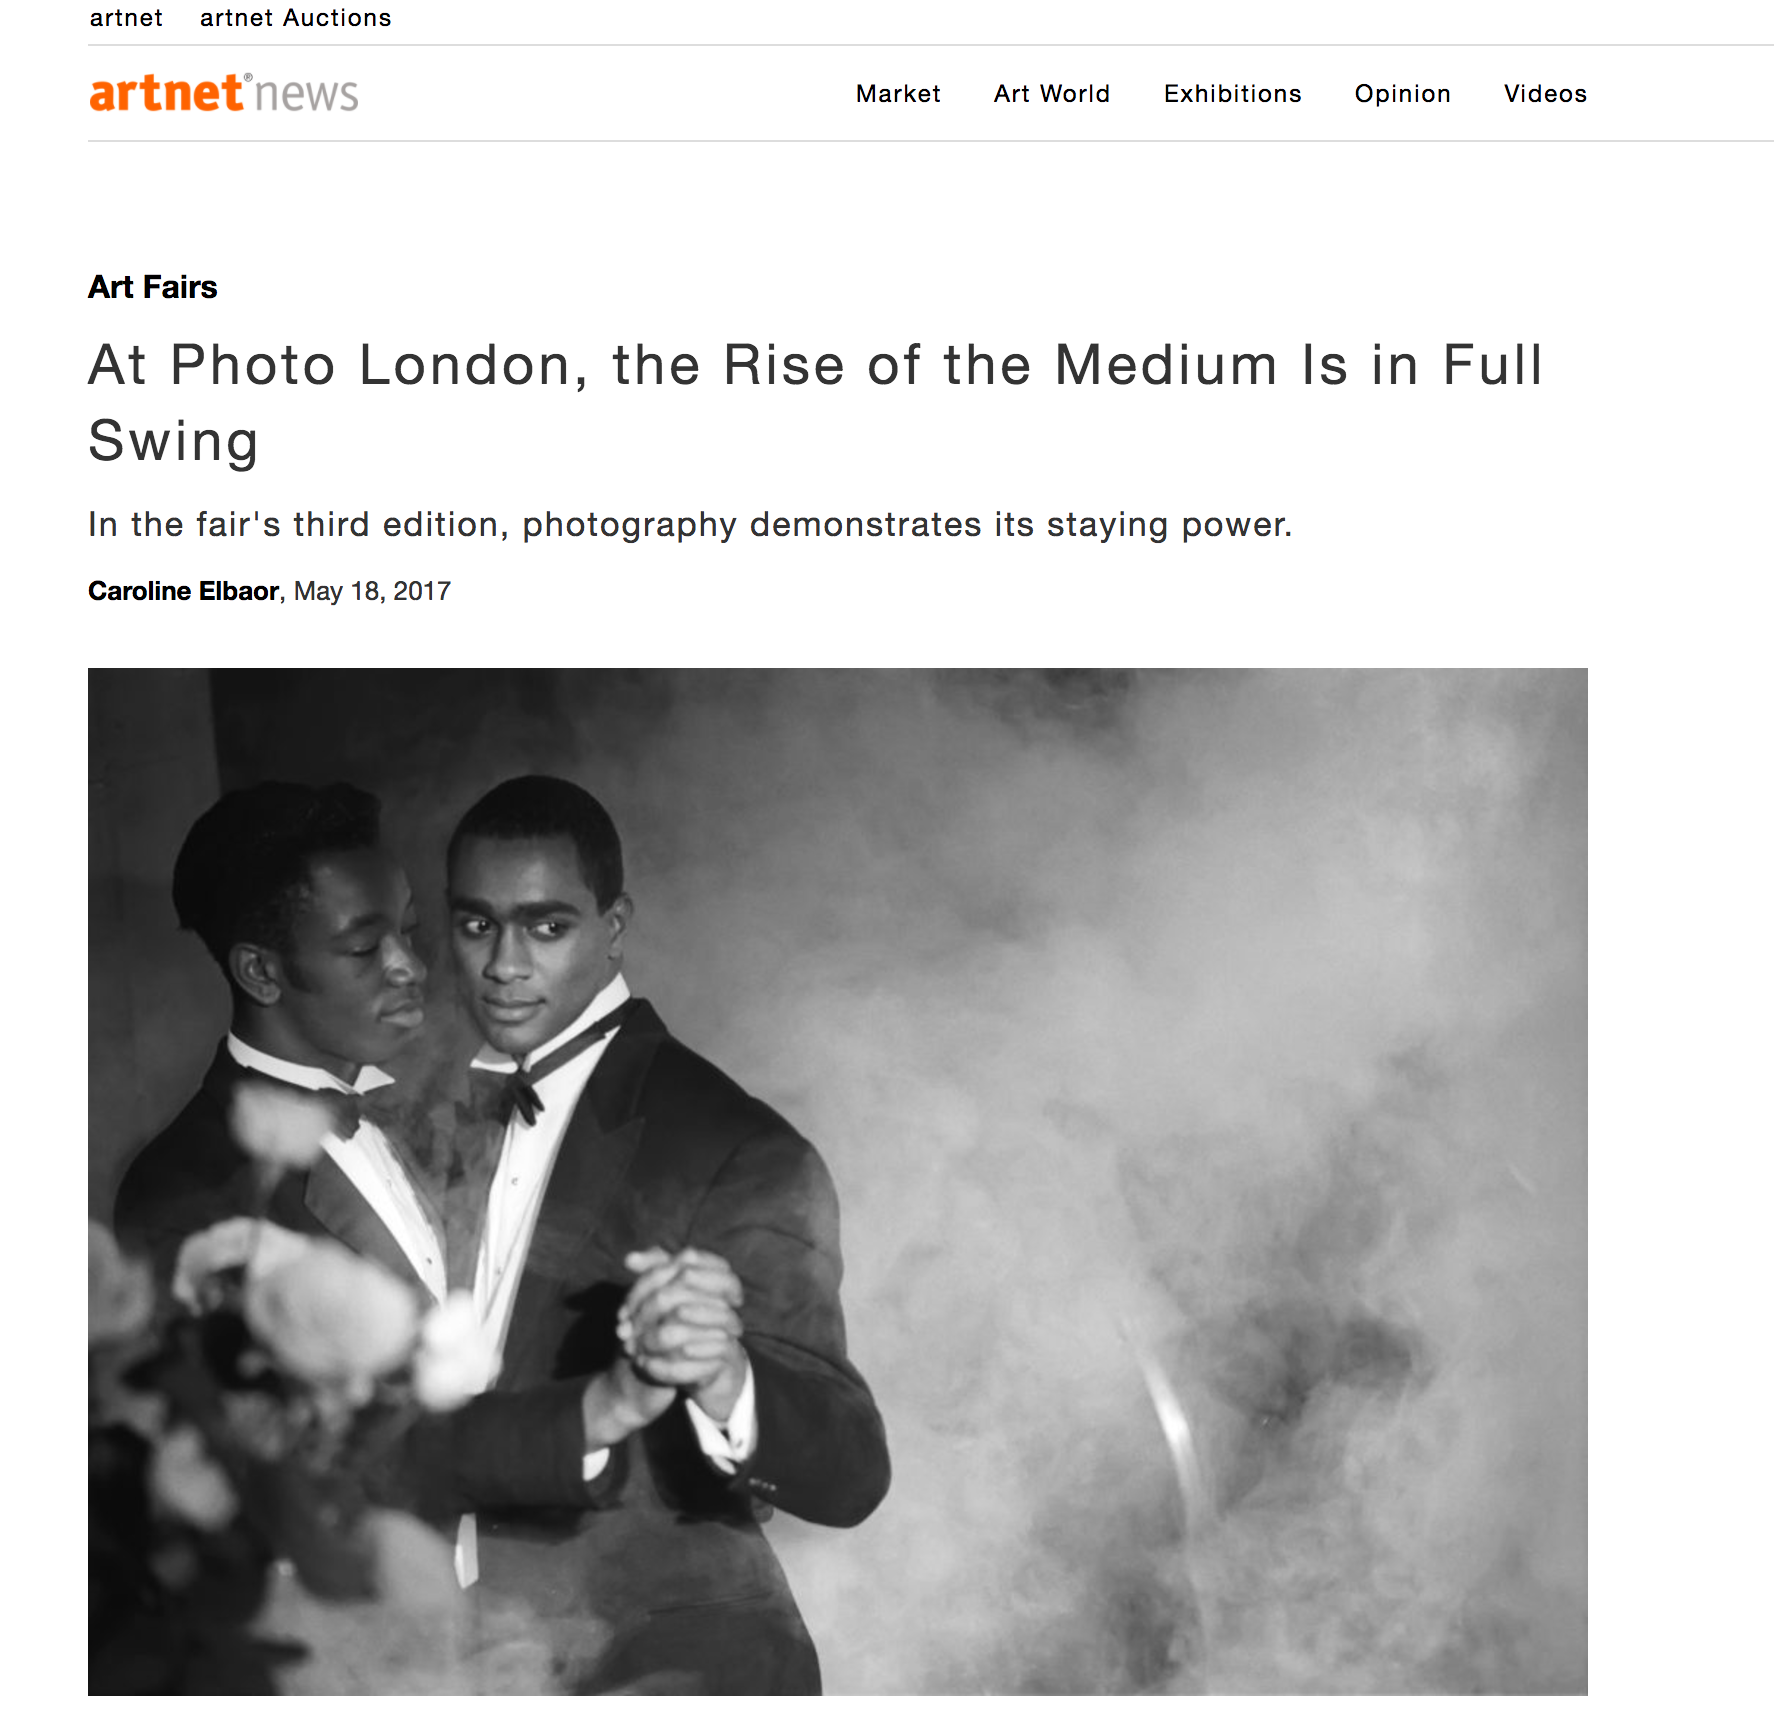 https://news.artnet.com/market/photo-london-2017-963215